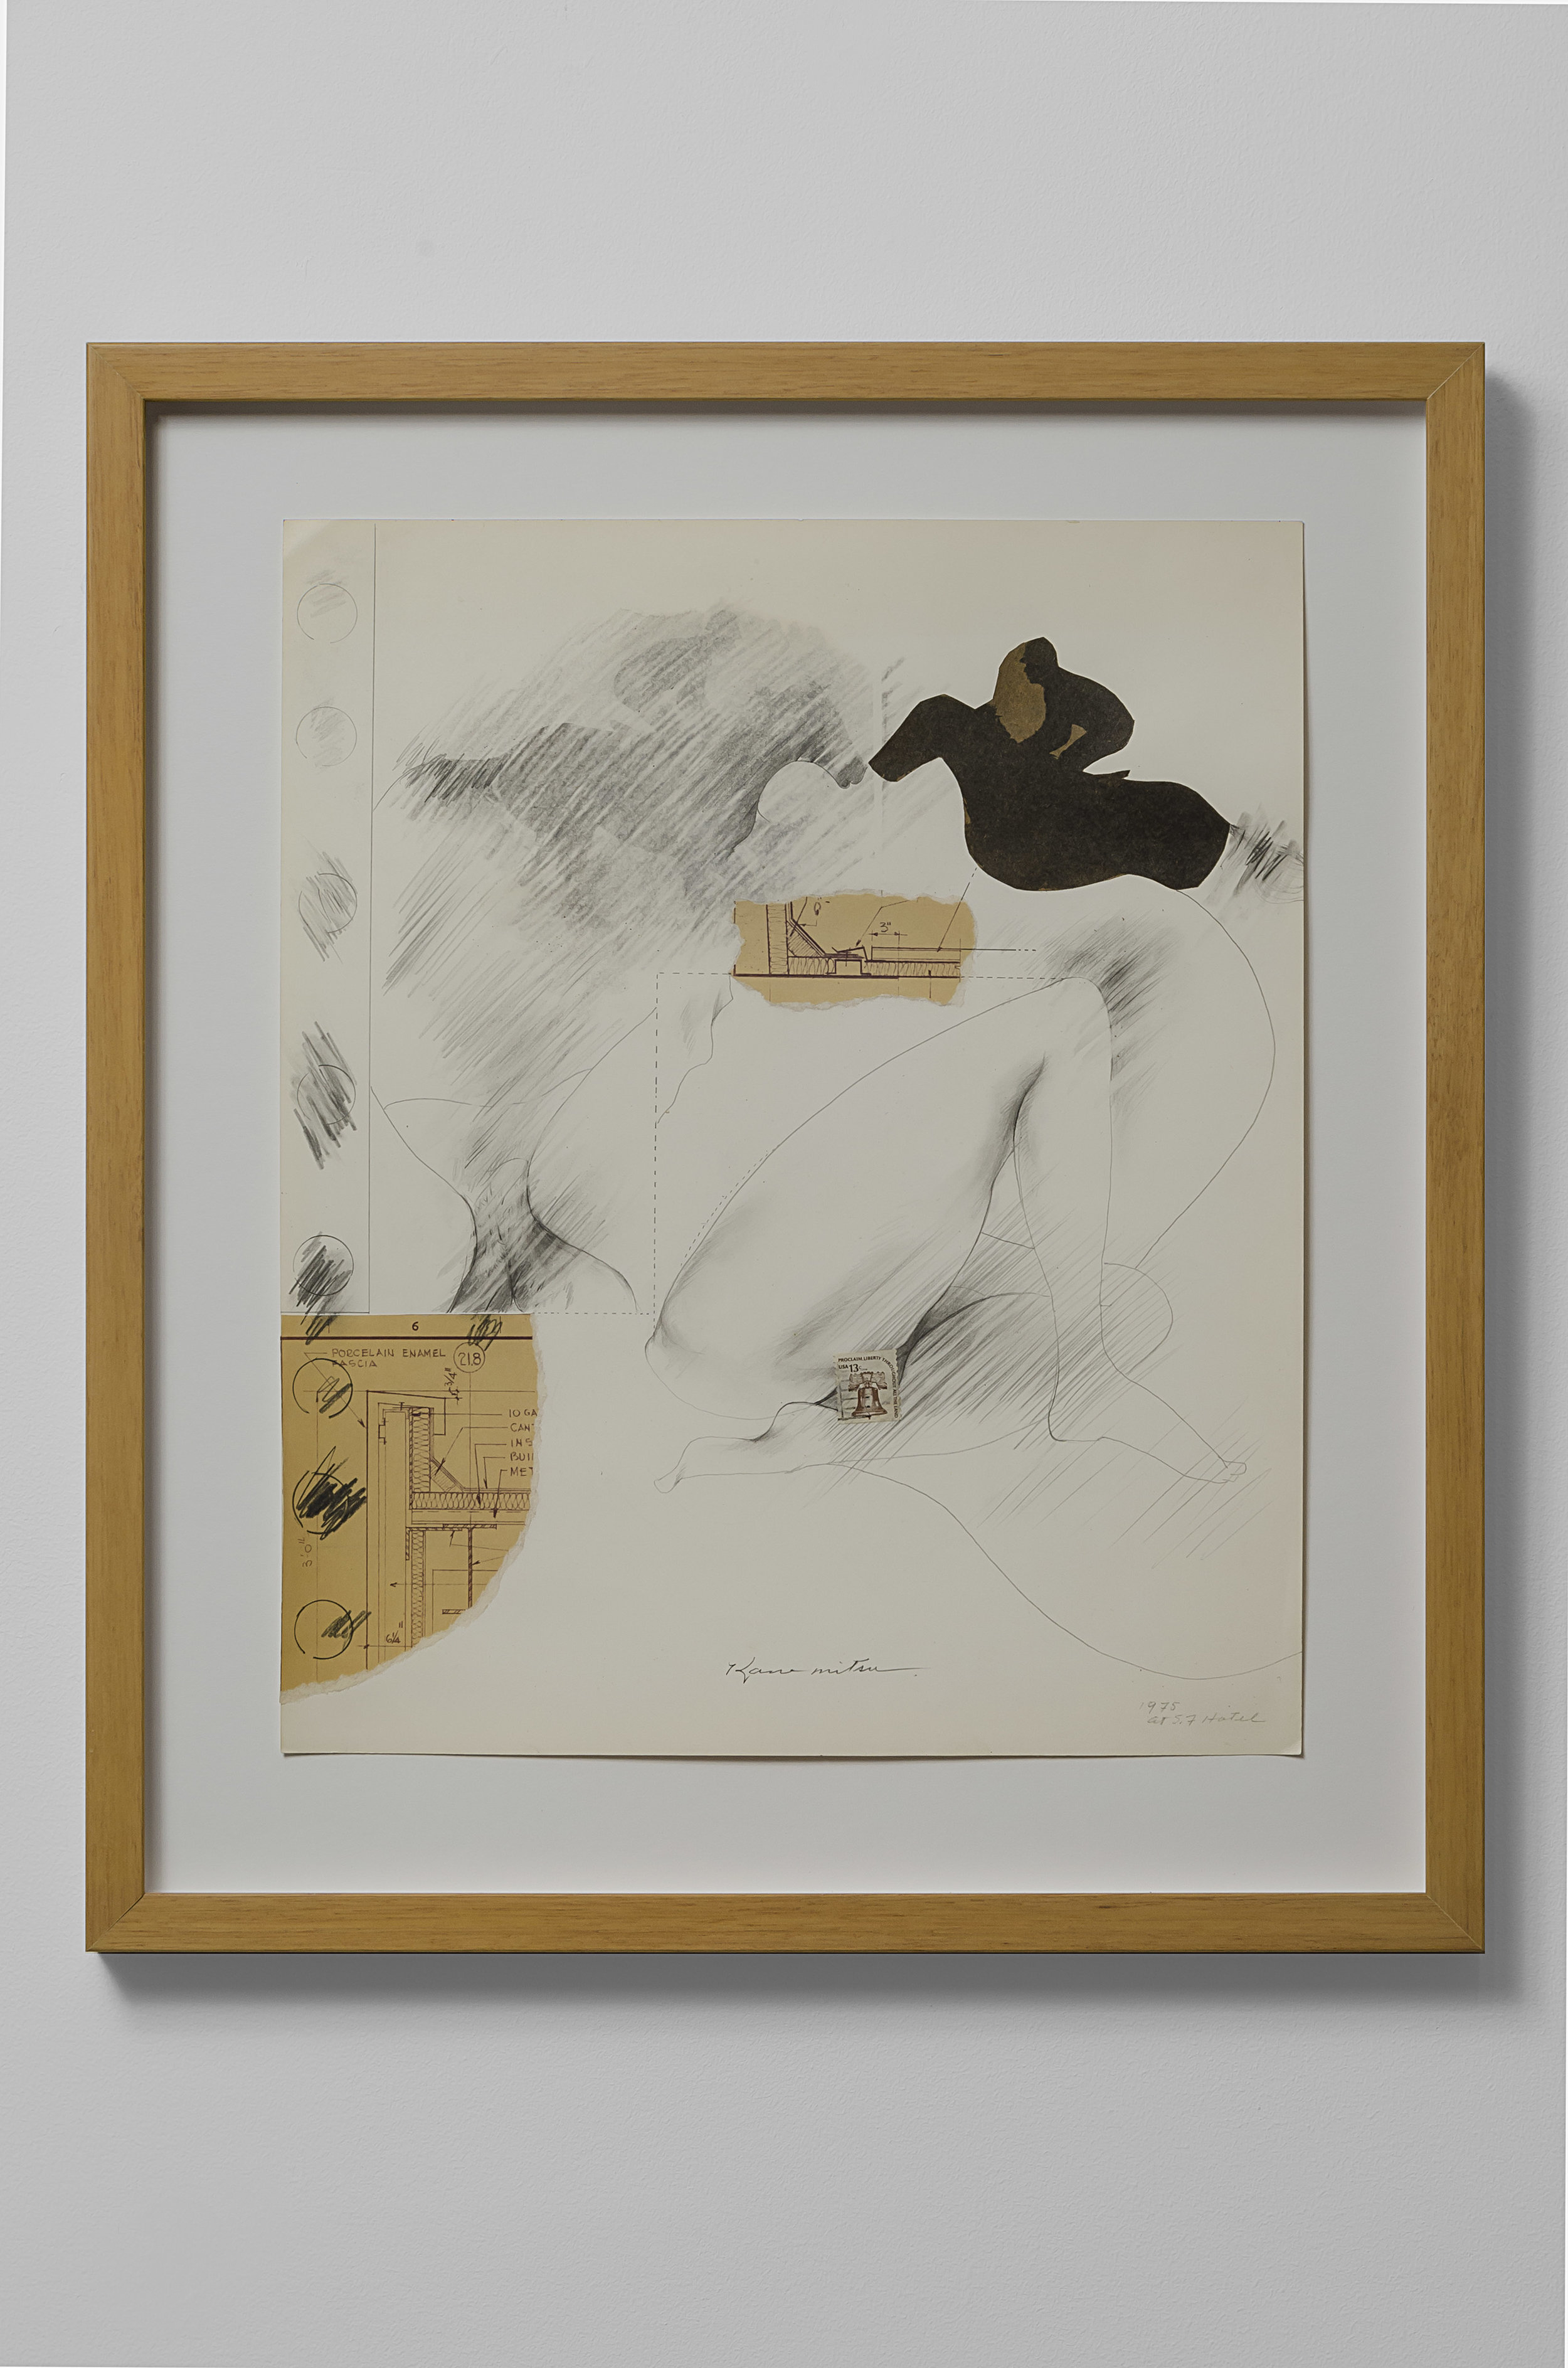 Untitled , 1975  paper collage and graphite on paper 17 x 14 inches; 43.2 x 35.6 centimeters  $7,500